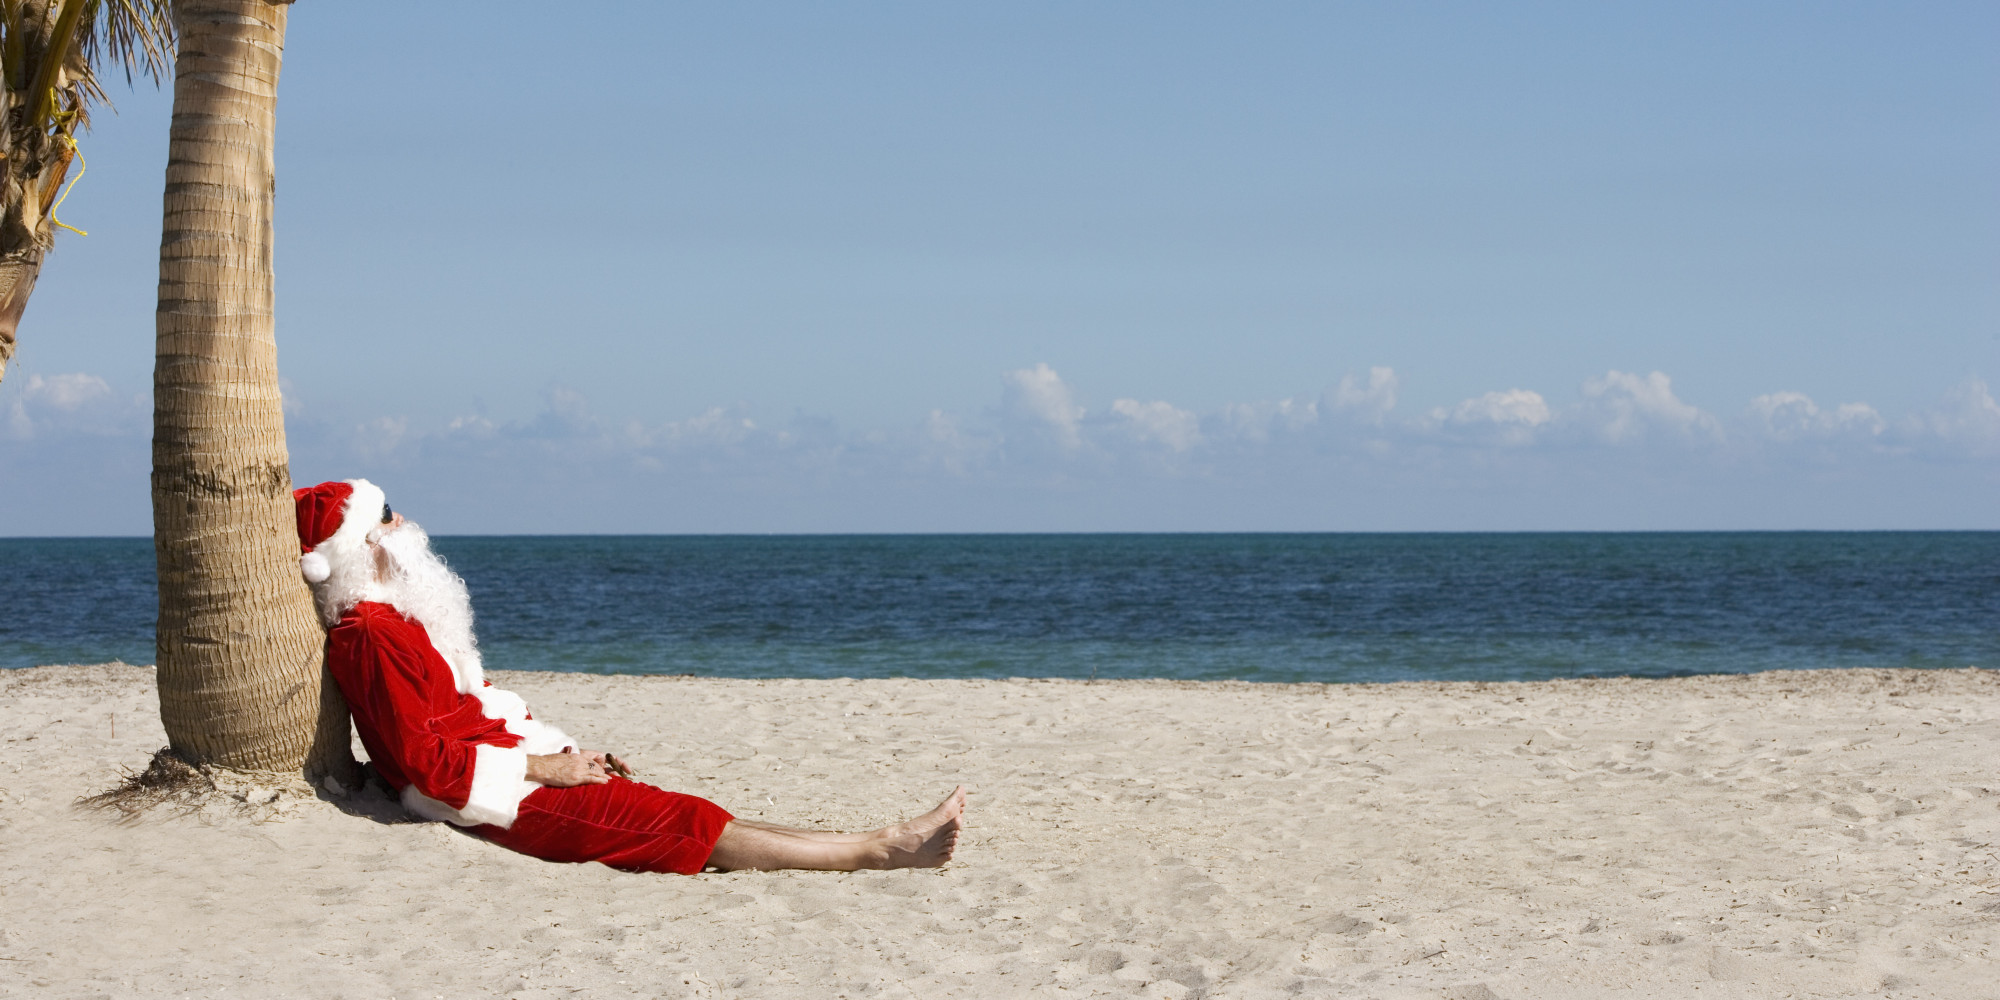 it really is insanely warm this christmas in miami according to